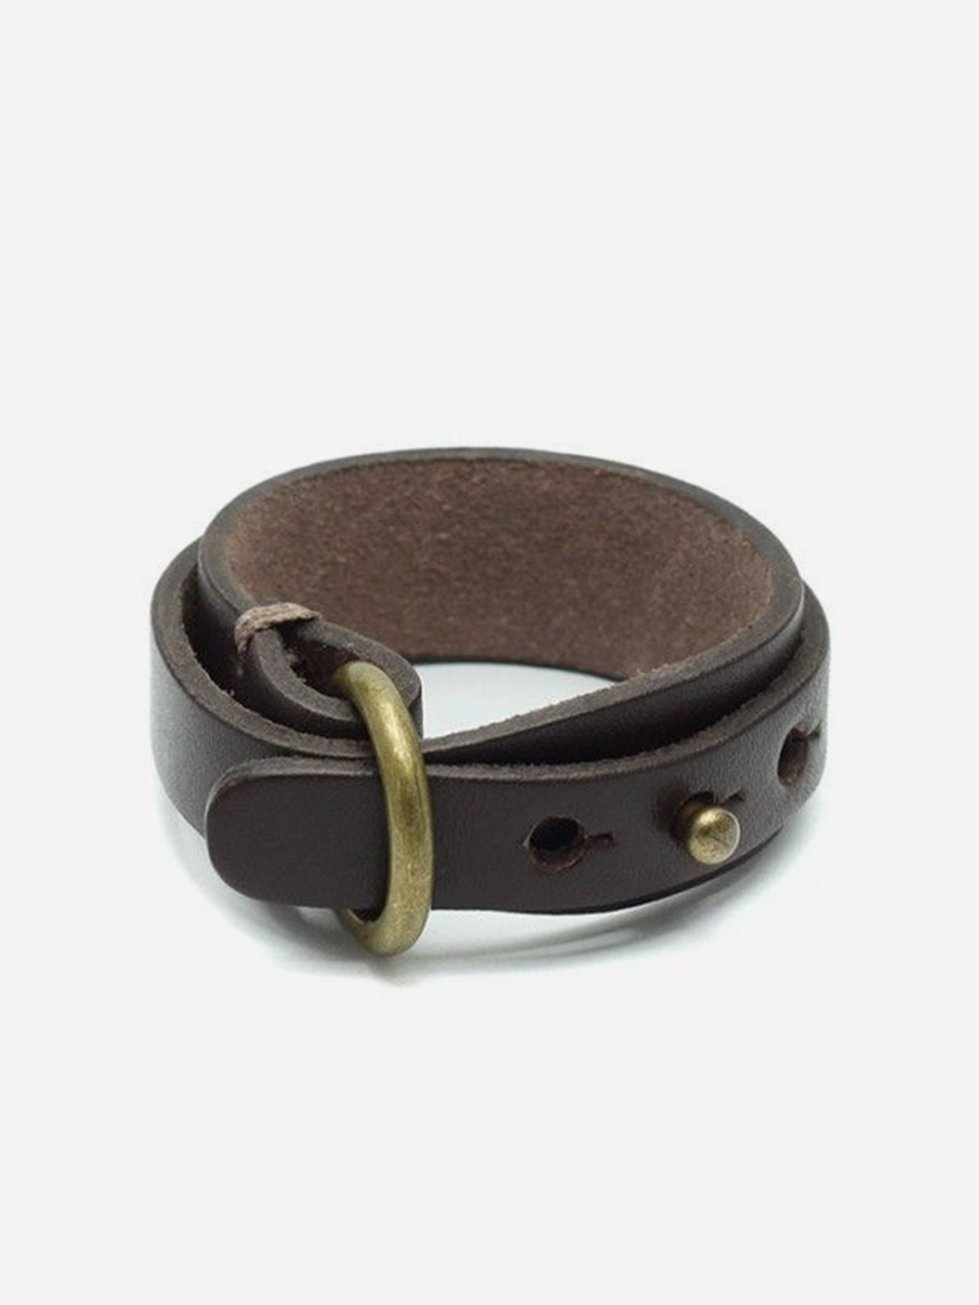 Foto do Bracelete Cutterman Co Over Strap Coffee